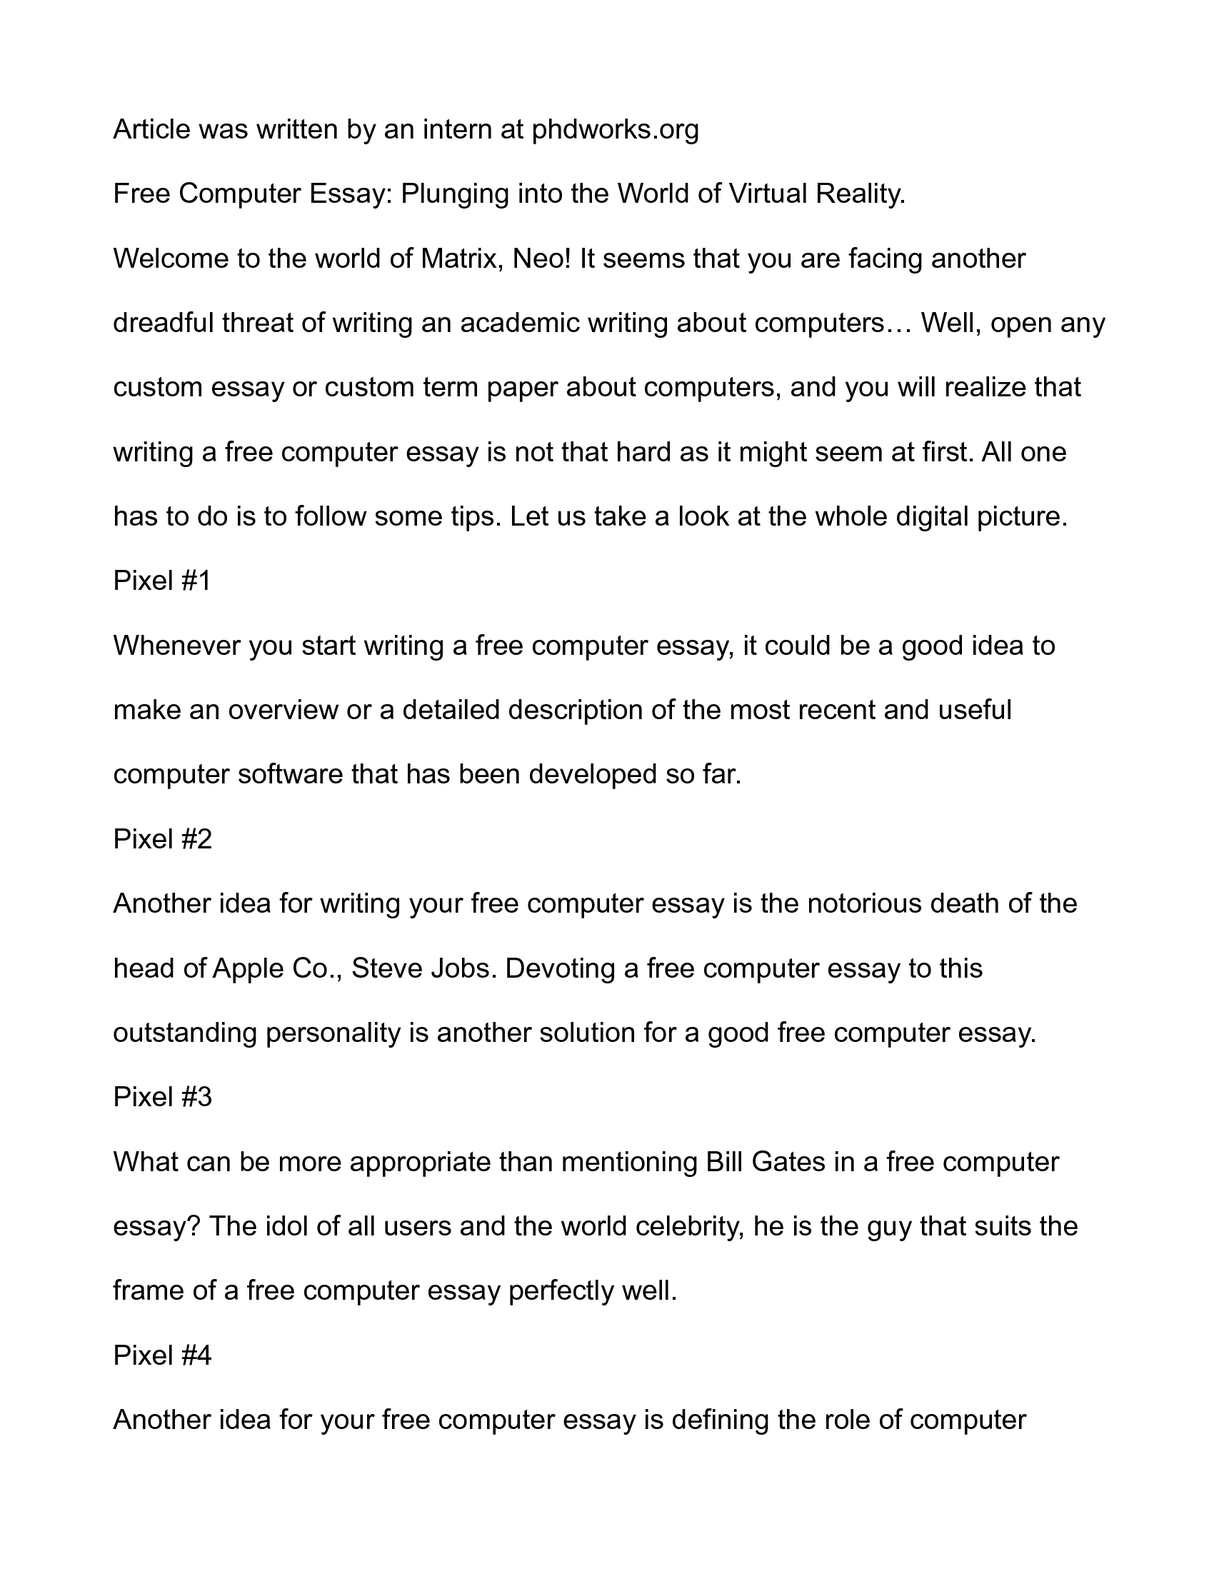 Calamo  Free Computer Essay Plunging Into The World Of Virtual  Calamo  Free Computer Essay Plunging Into The World Of Virtual Reality Health Care Essay Topics also Essay On Library In English  Will Pay Someone To Do My Assignment